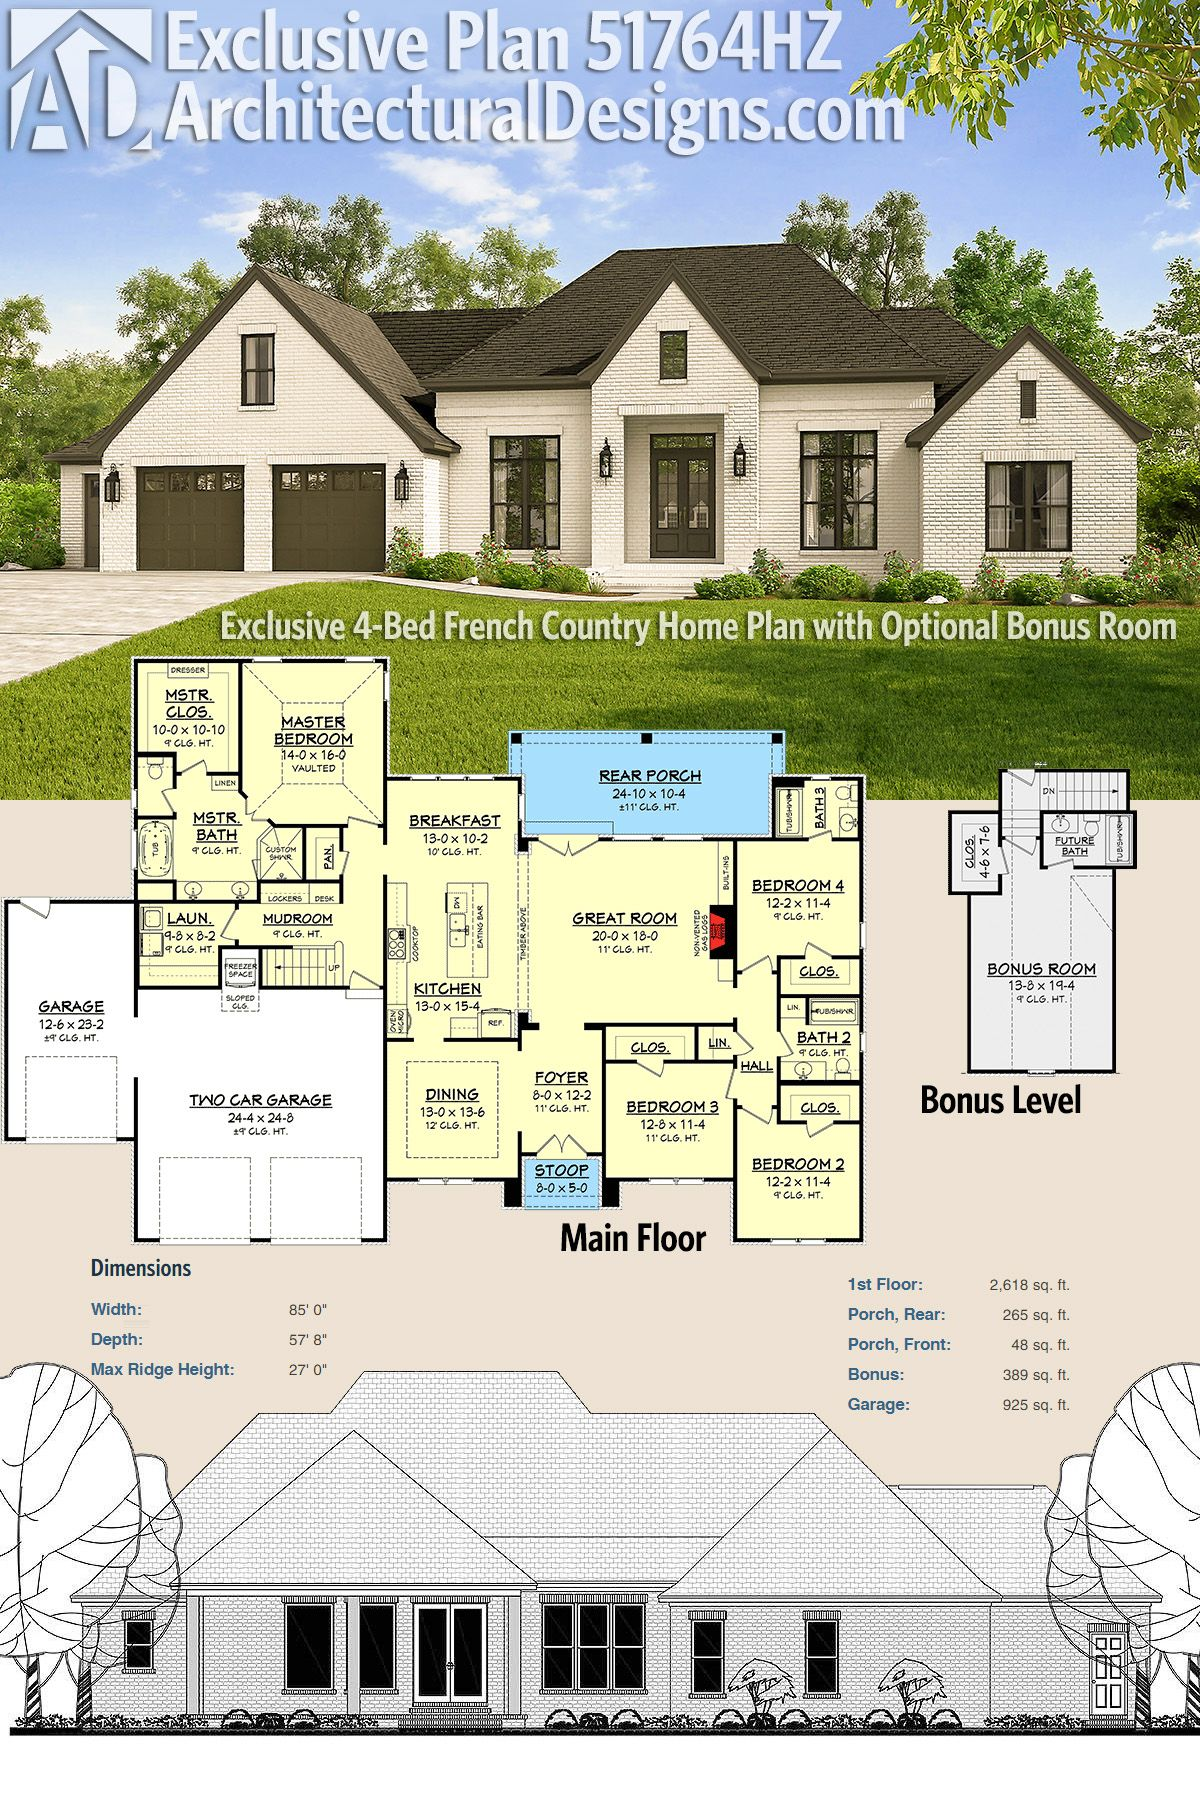 Plan 51764hz exclusive 4 bed french country home plan for French home plans